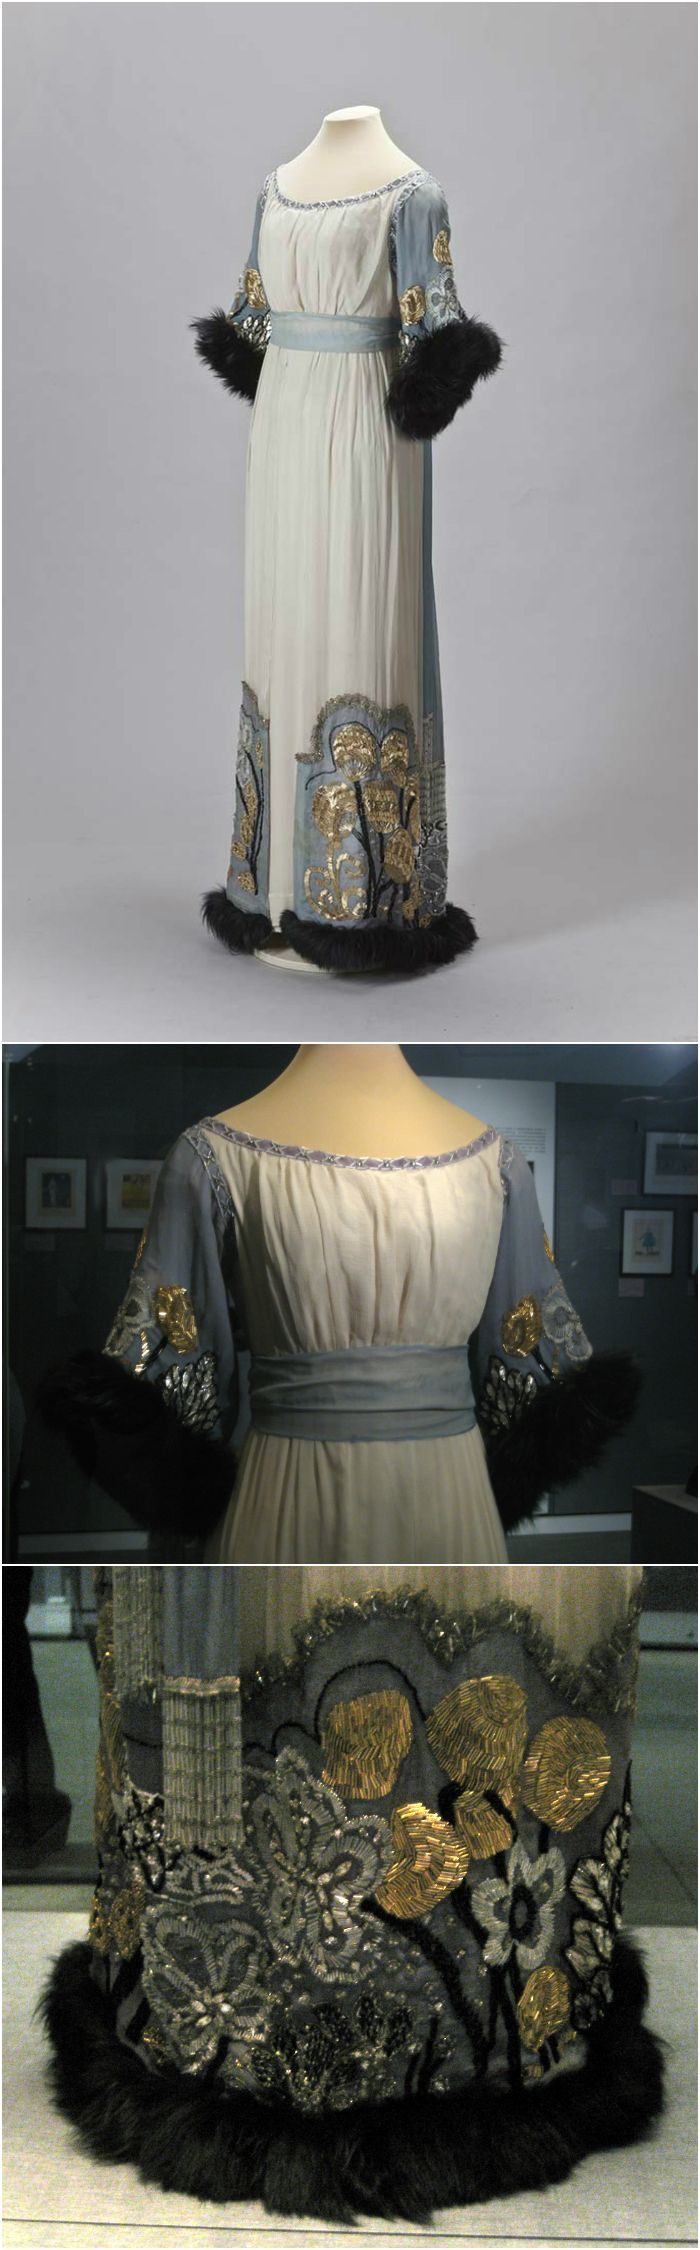 Evening dress by Anna Gindus' Workshop, St Petersburg, 1910s. The dress was originally found in the Novo-Mikhailovsky Palace, a Russian imperial residence. Photos courtesy of (Top): The State Hermitage Museum, St. Petersburg, via http://halloart.ru/showthread.php?t=944 (Middle & Bottom): Shakko on http://commons.wikimedia.org/wiki/Category:Paul_Poiret_%28Moscow_Kremlin_exhibition_2011%29